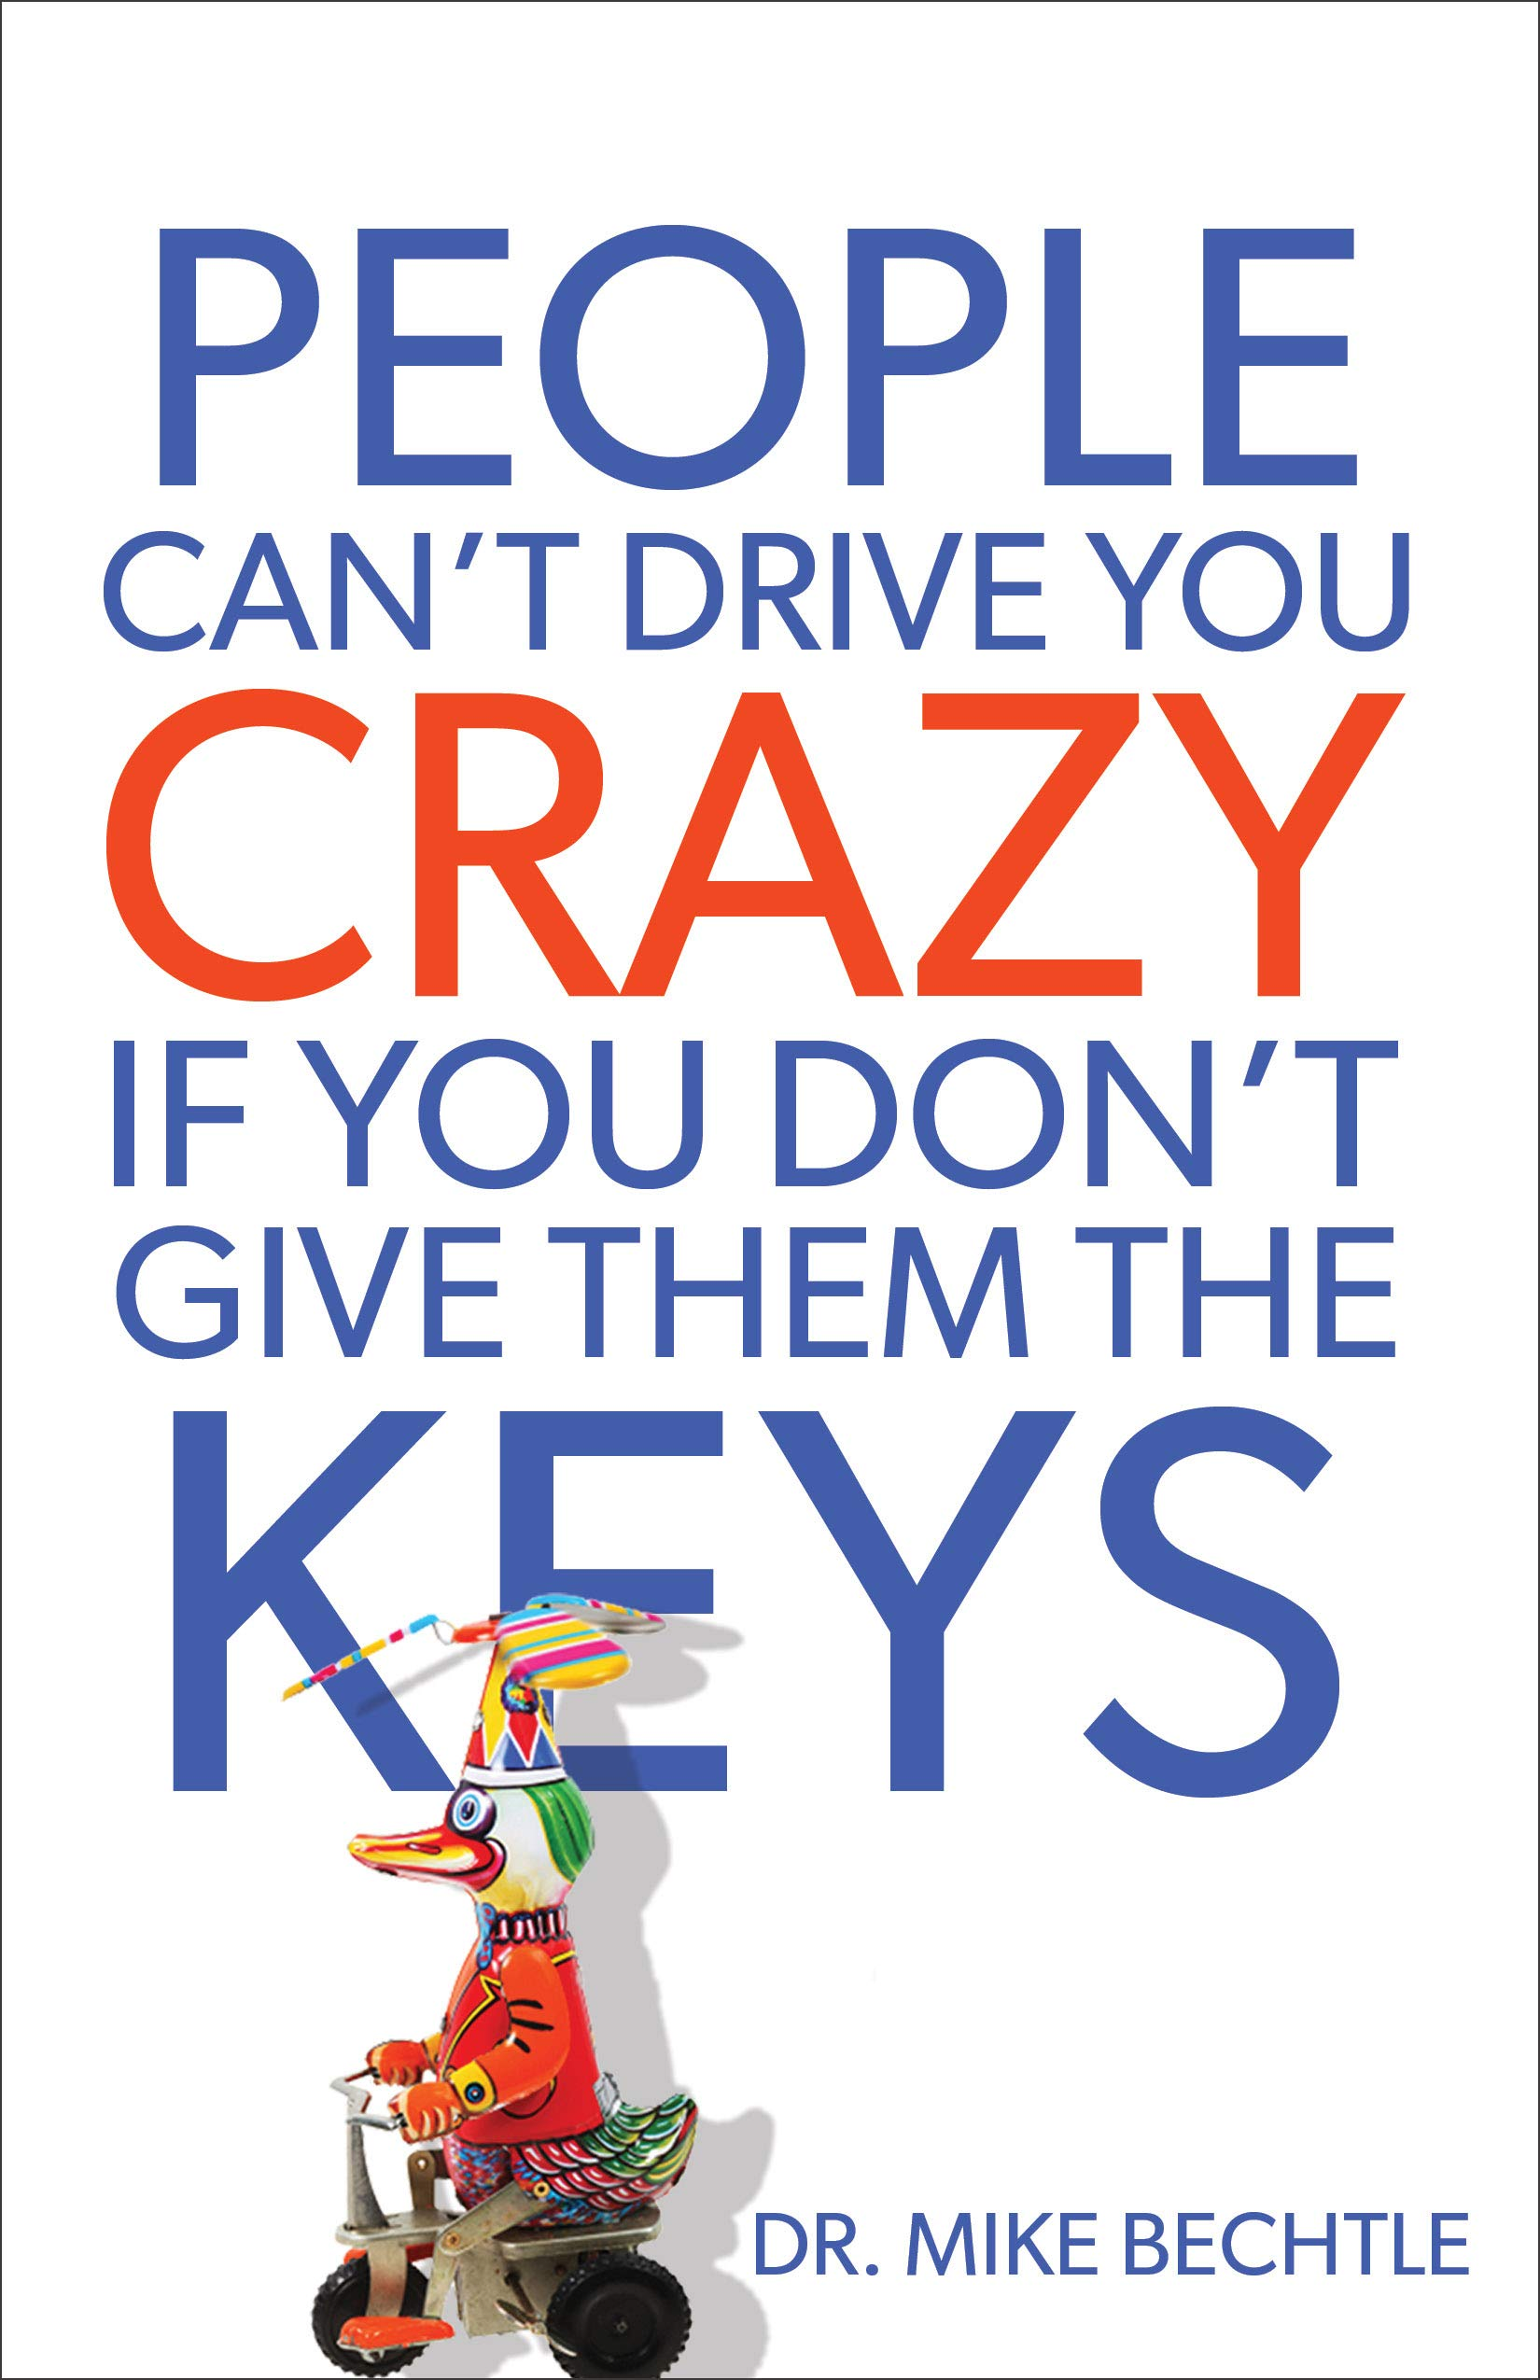 """Image result for """"People can't drive you crazy unless you give them the keys!"""" ~ Dr. Mike Bechtle"""